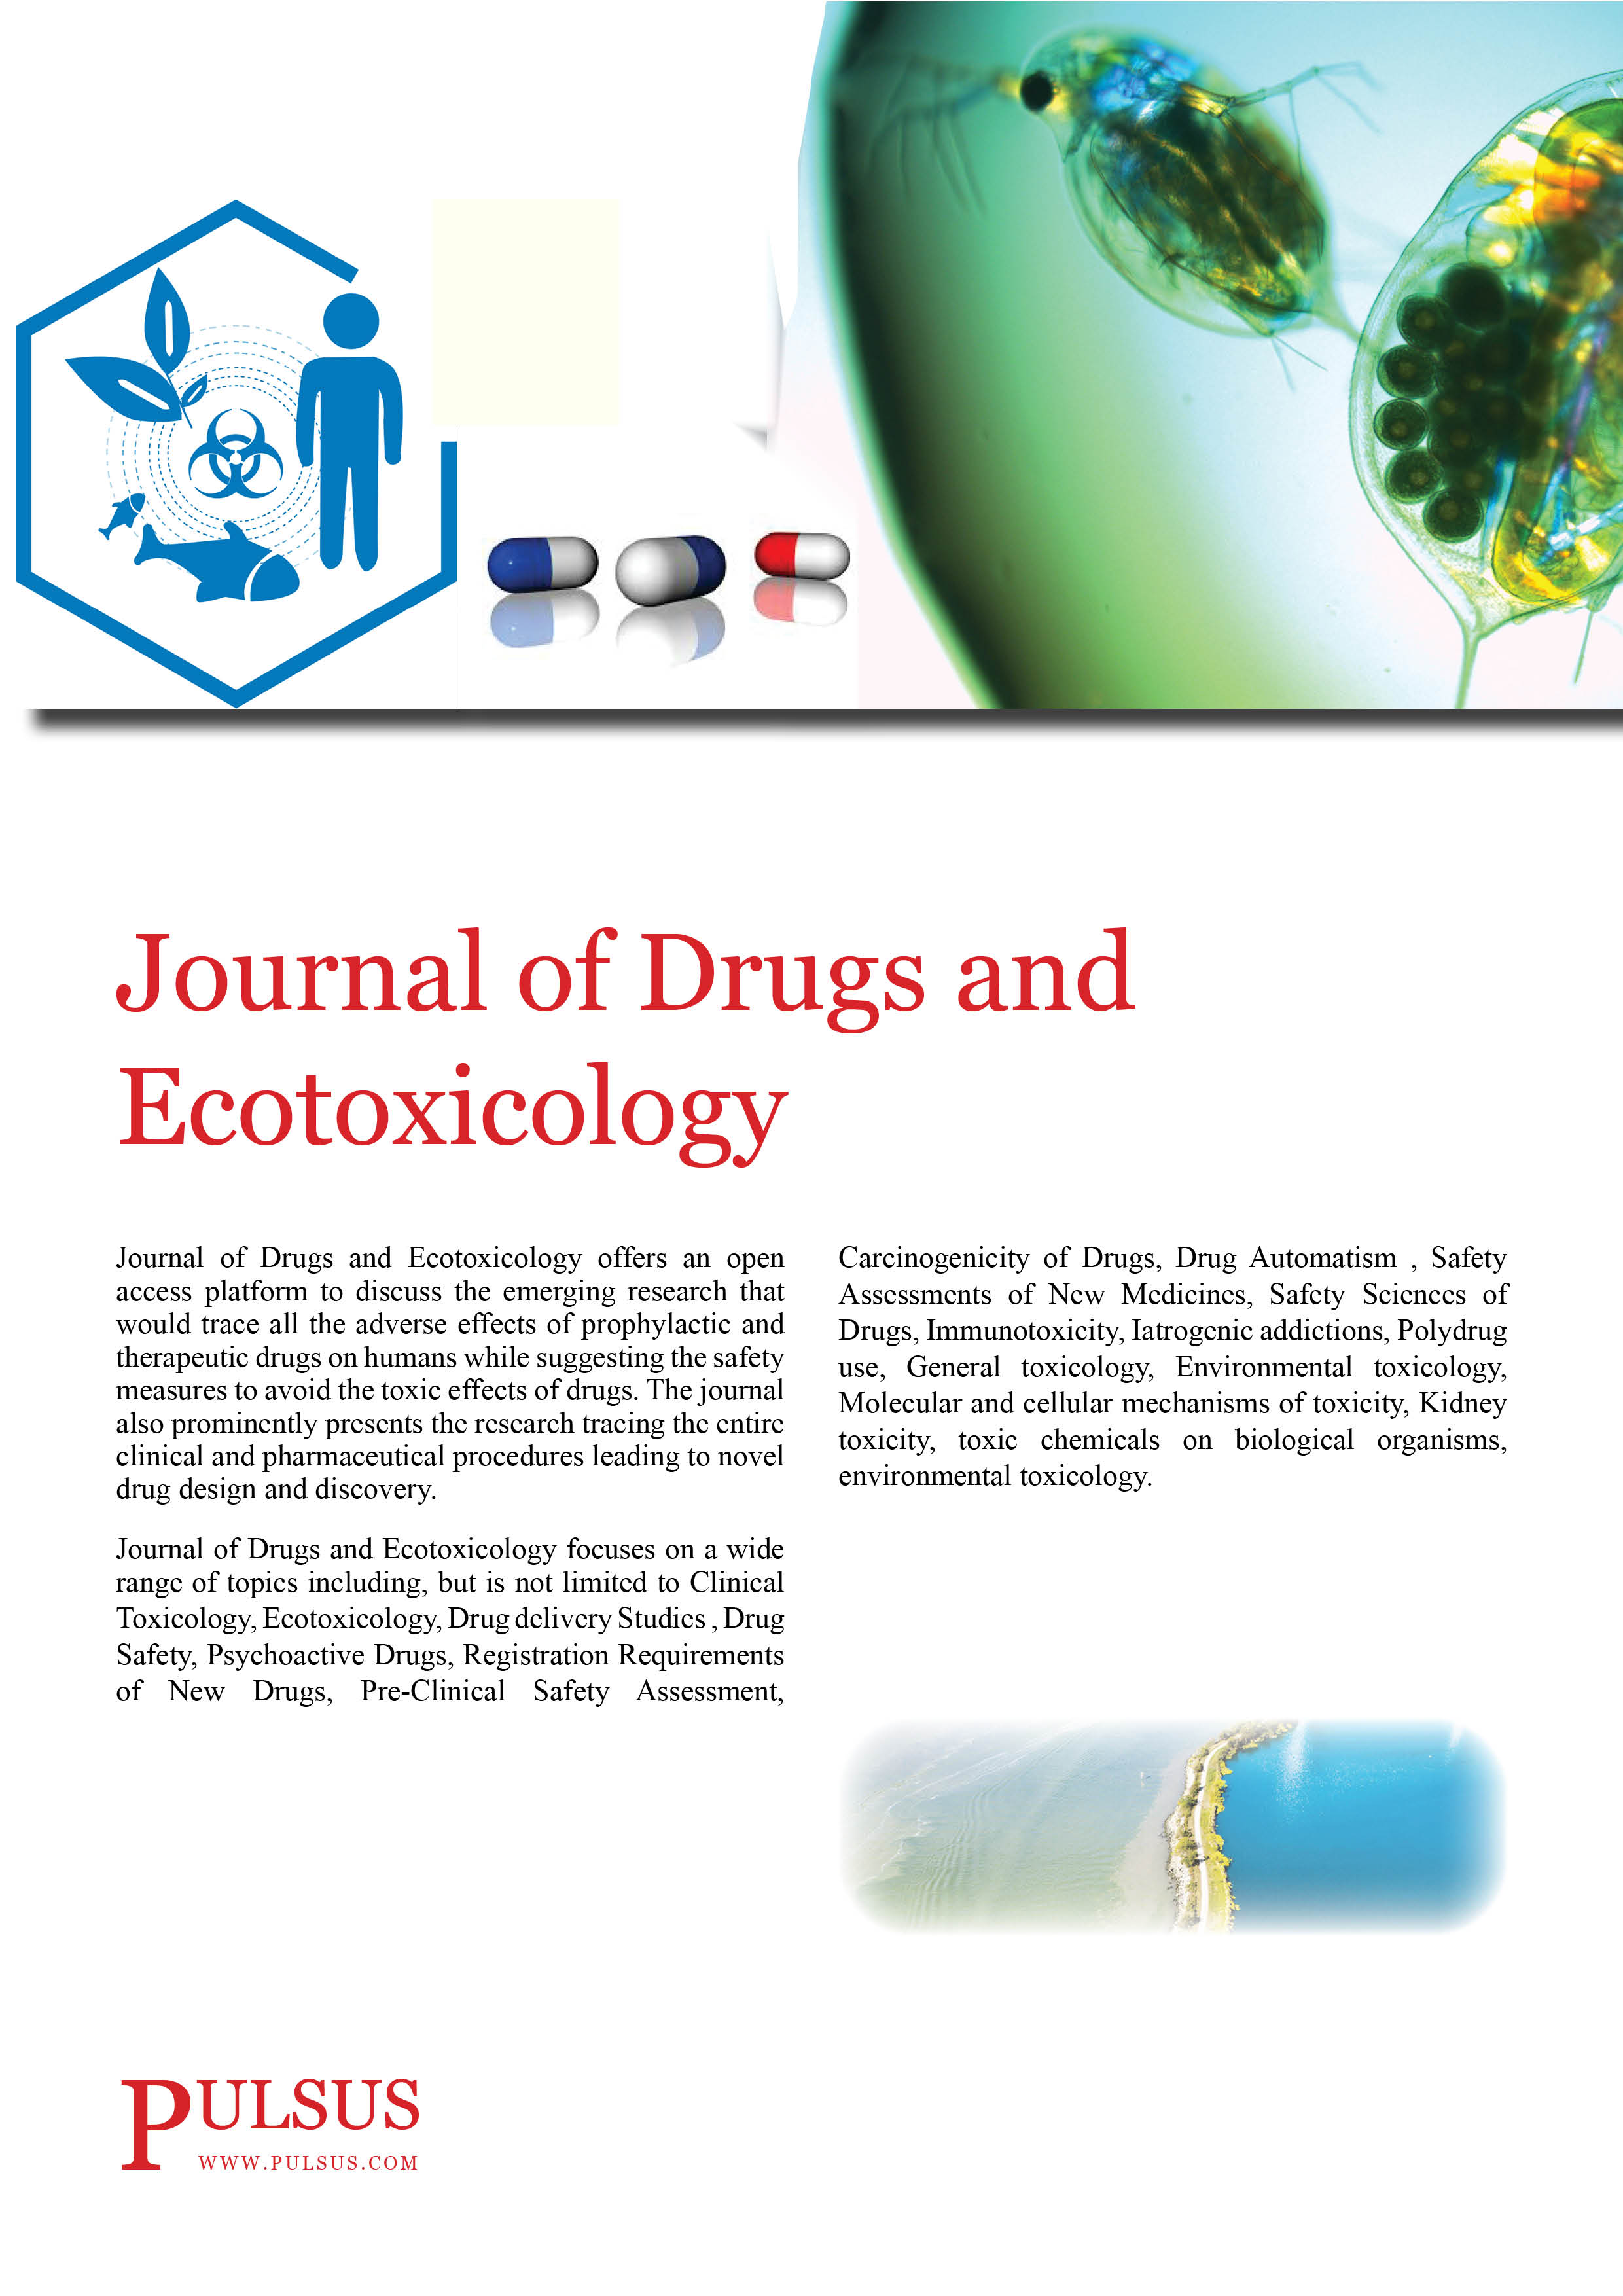 Journal of Drugs and Ecotoxicology